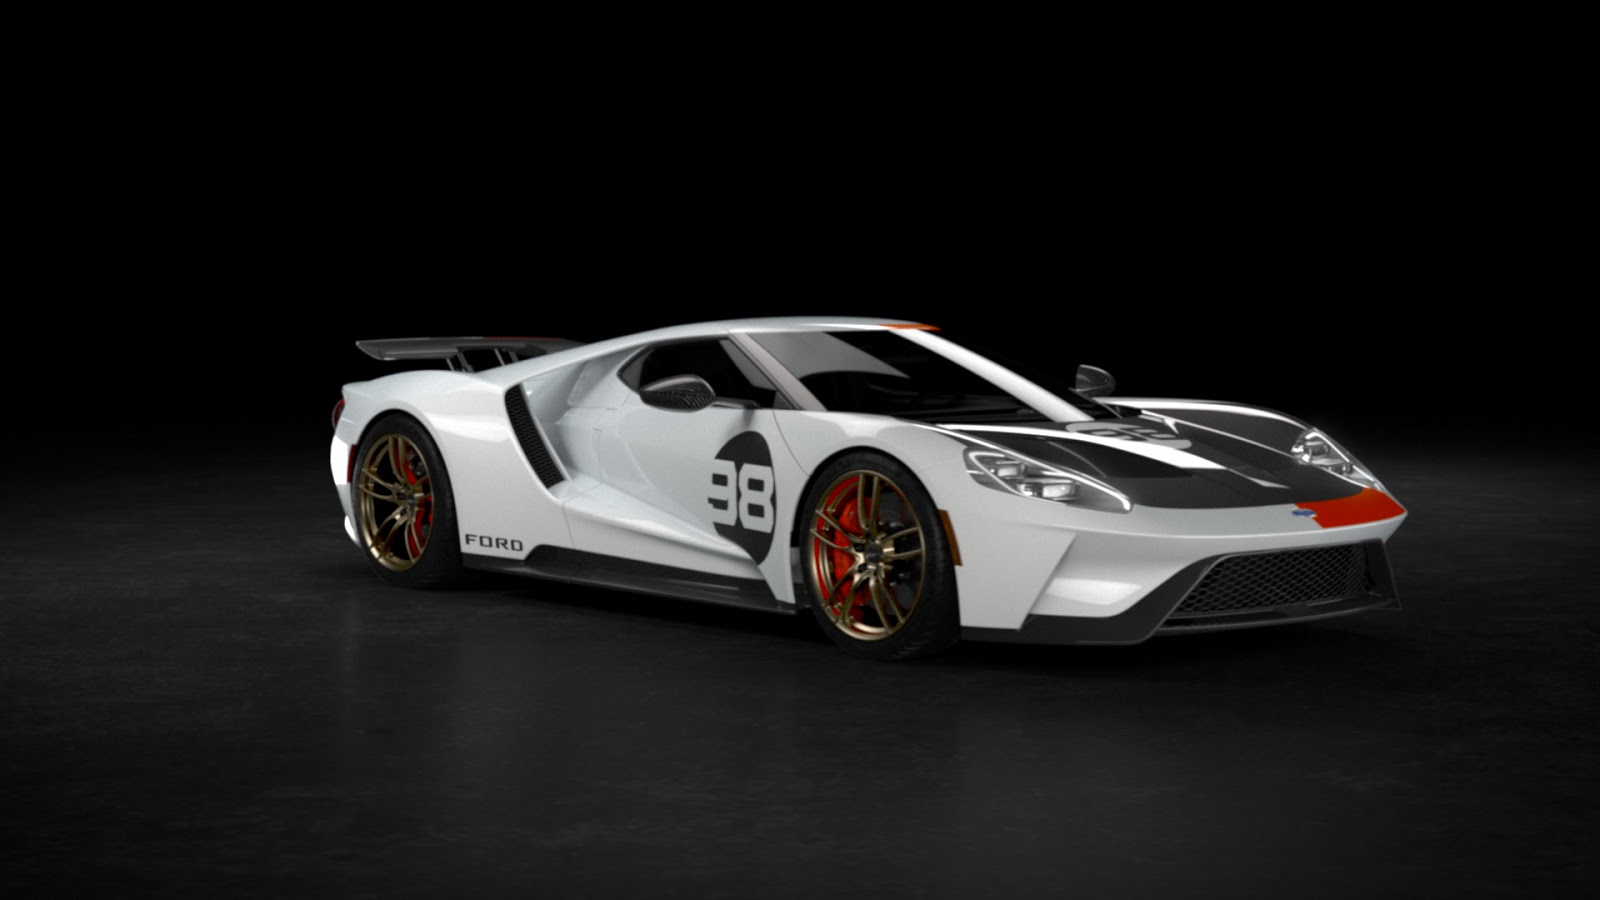 2021 Ford GT Heritage Edition 11 Η πρώτη έκδοση Heritage Edition του Ford GT και η μοναδική έκδοση, Studio Collection